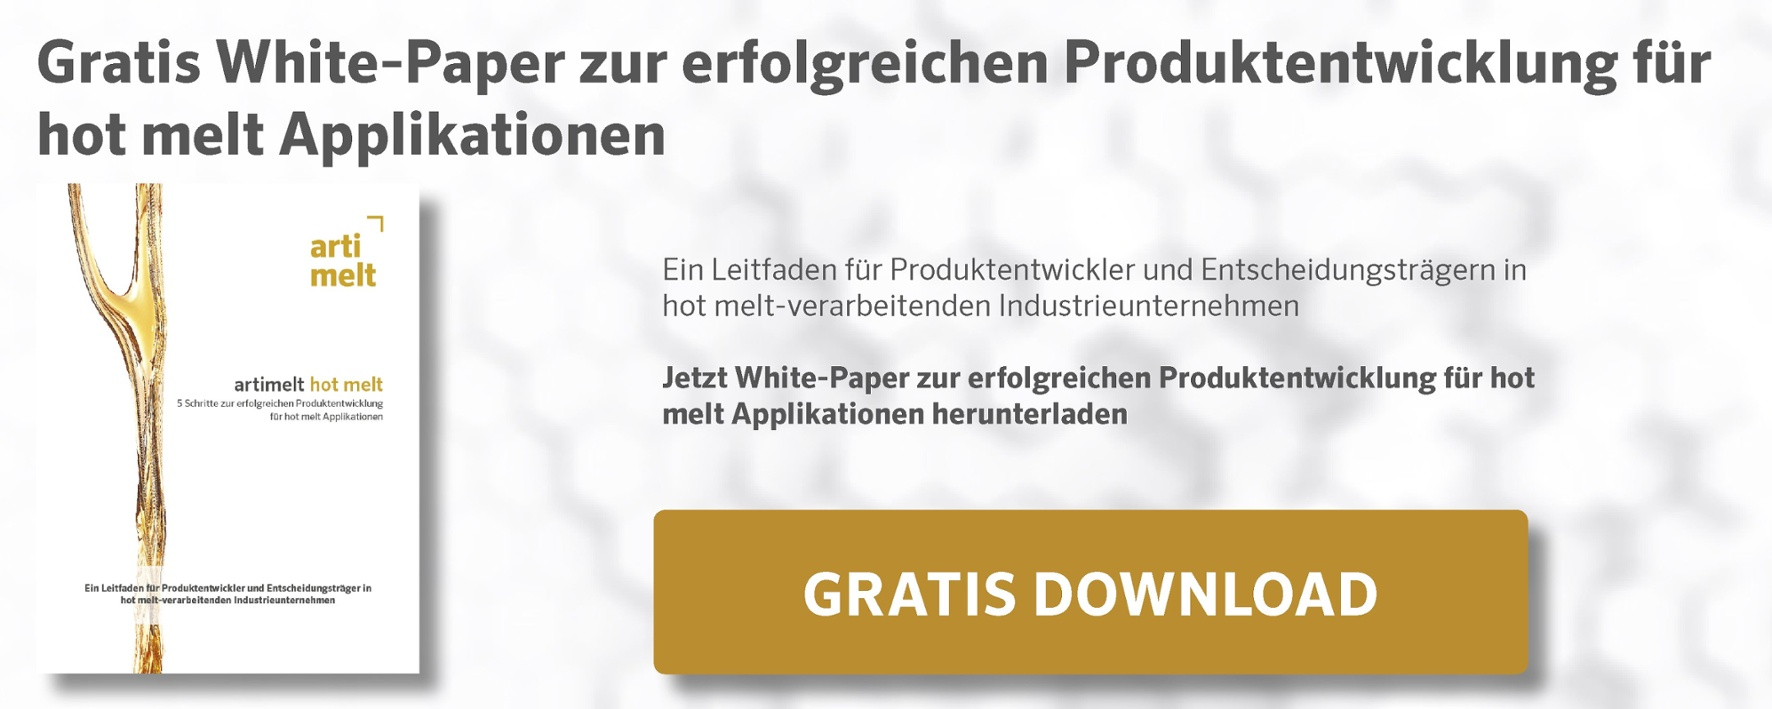 Gratis Download White-Paper